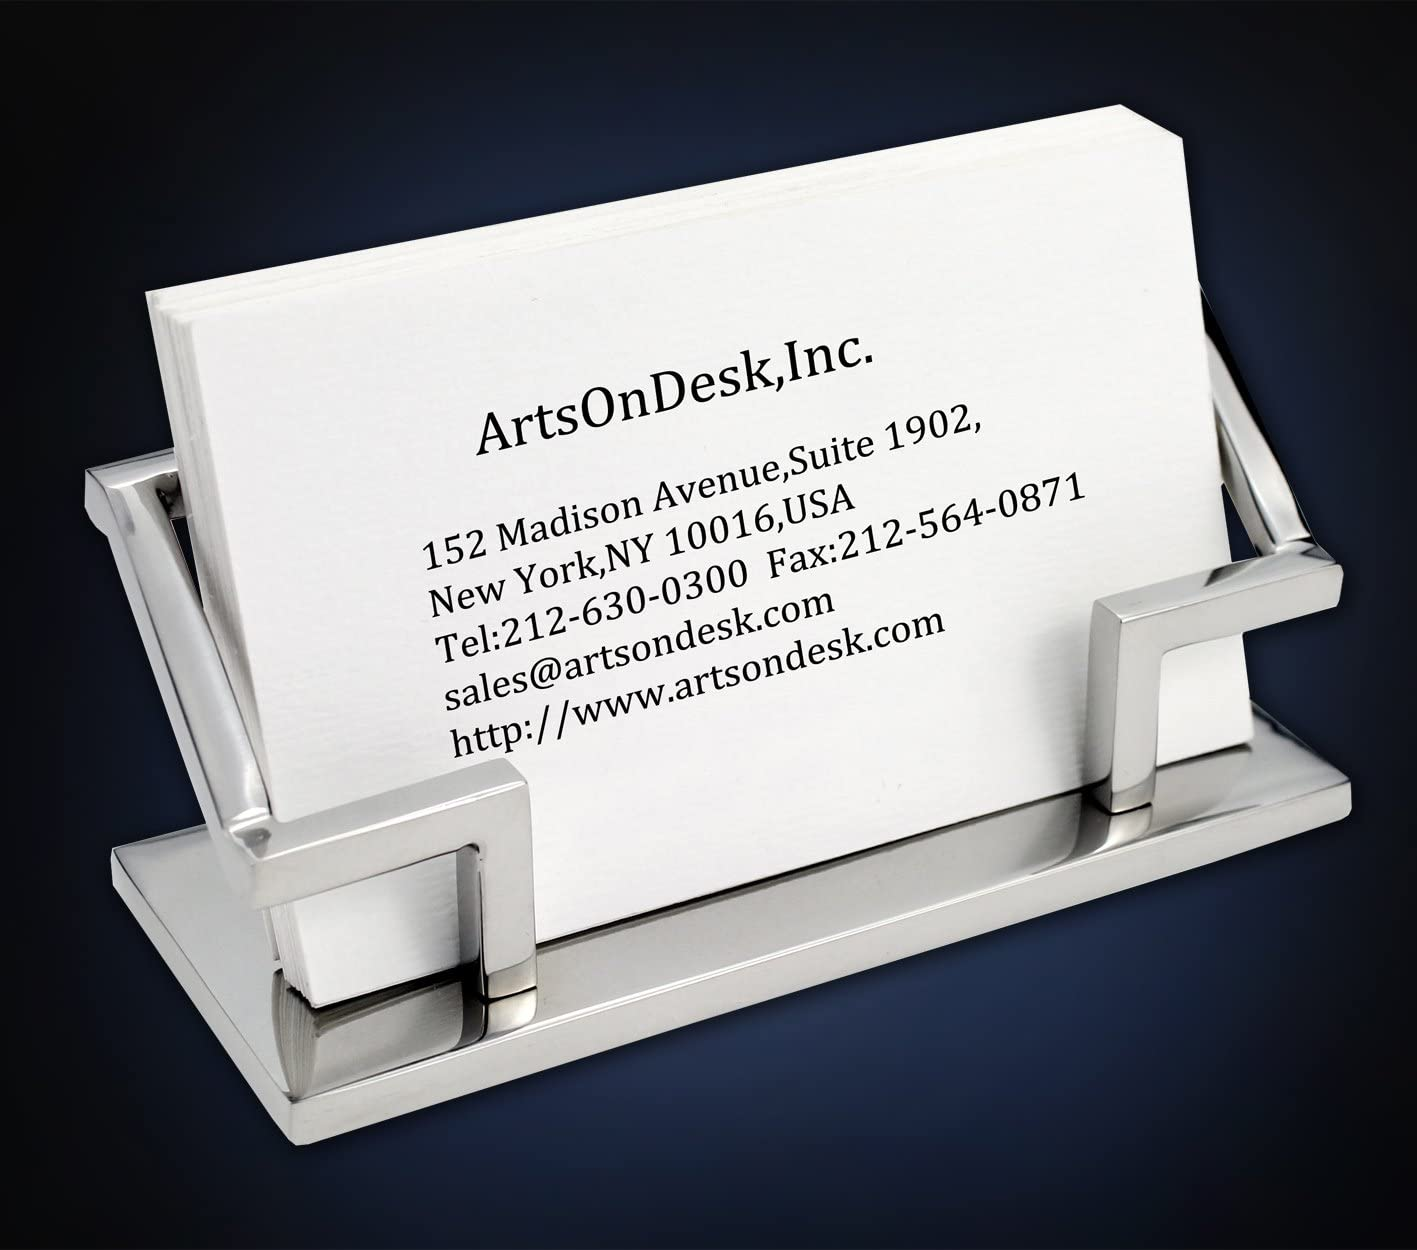 Apor Full Stainless Steel Office Business Card Holder Name Card Stand Display